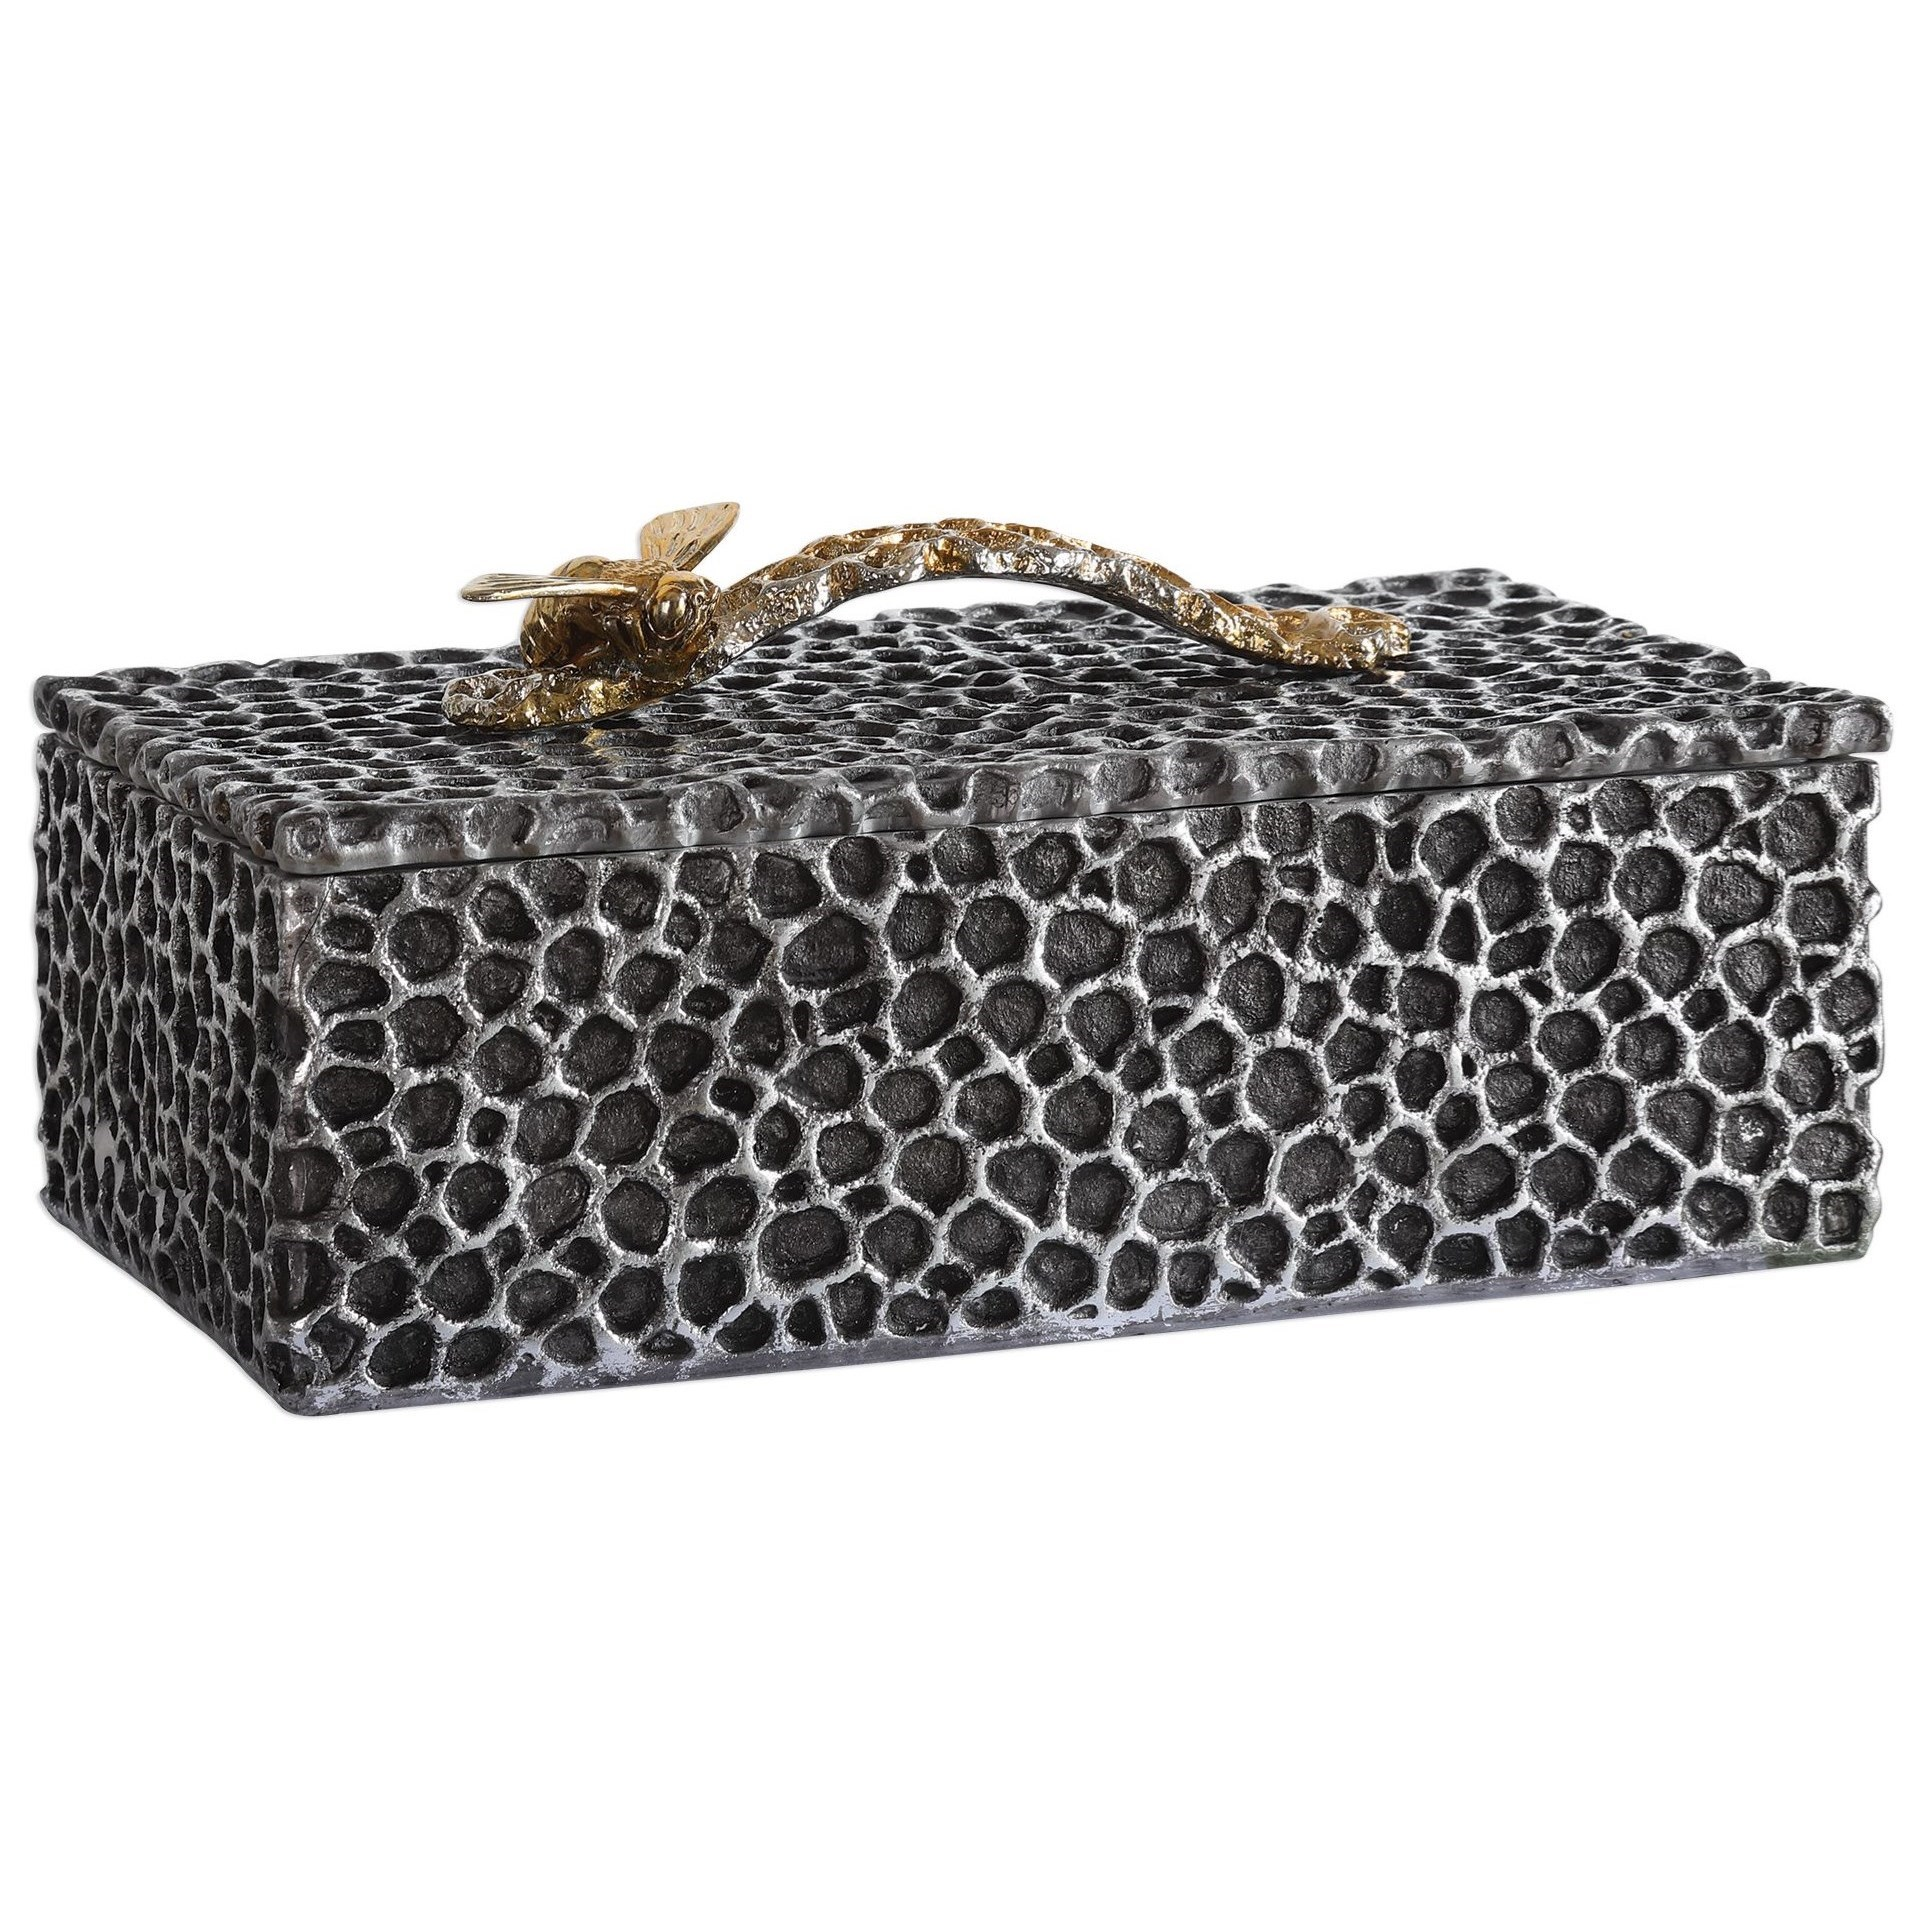 Accessories - Boxes Hive Aged Black Box by Uttermost at Dunk & Bright Furniture